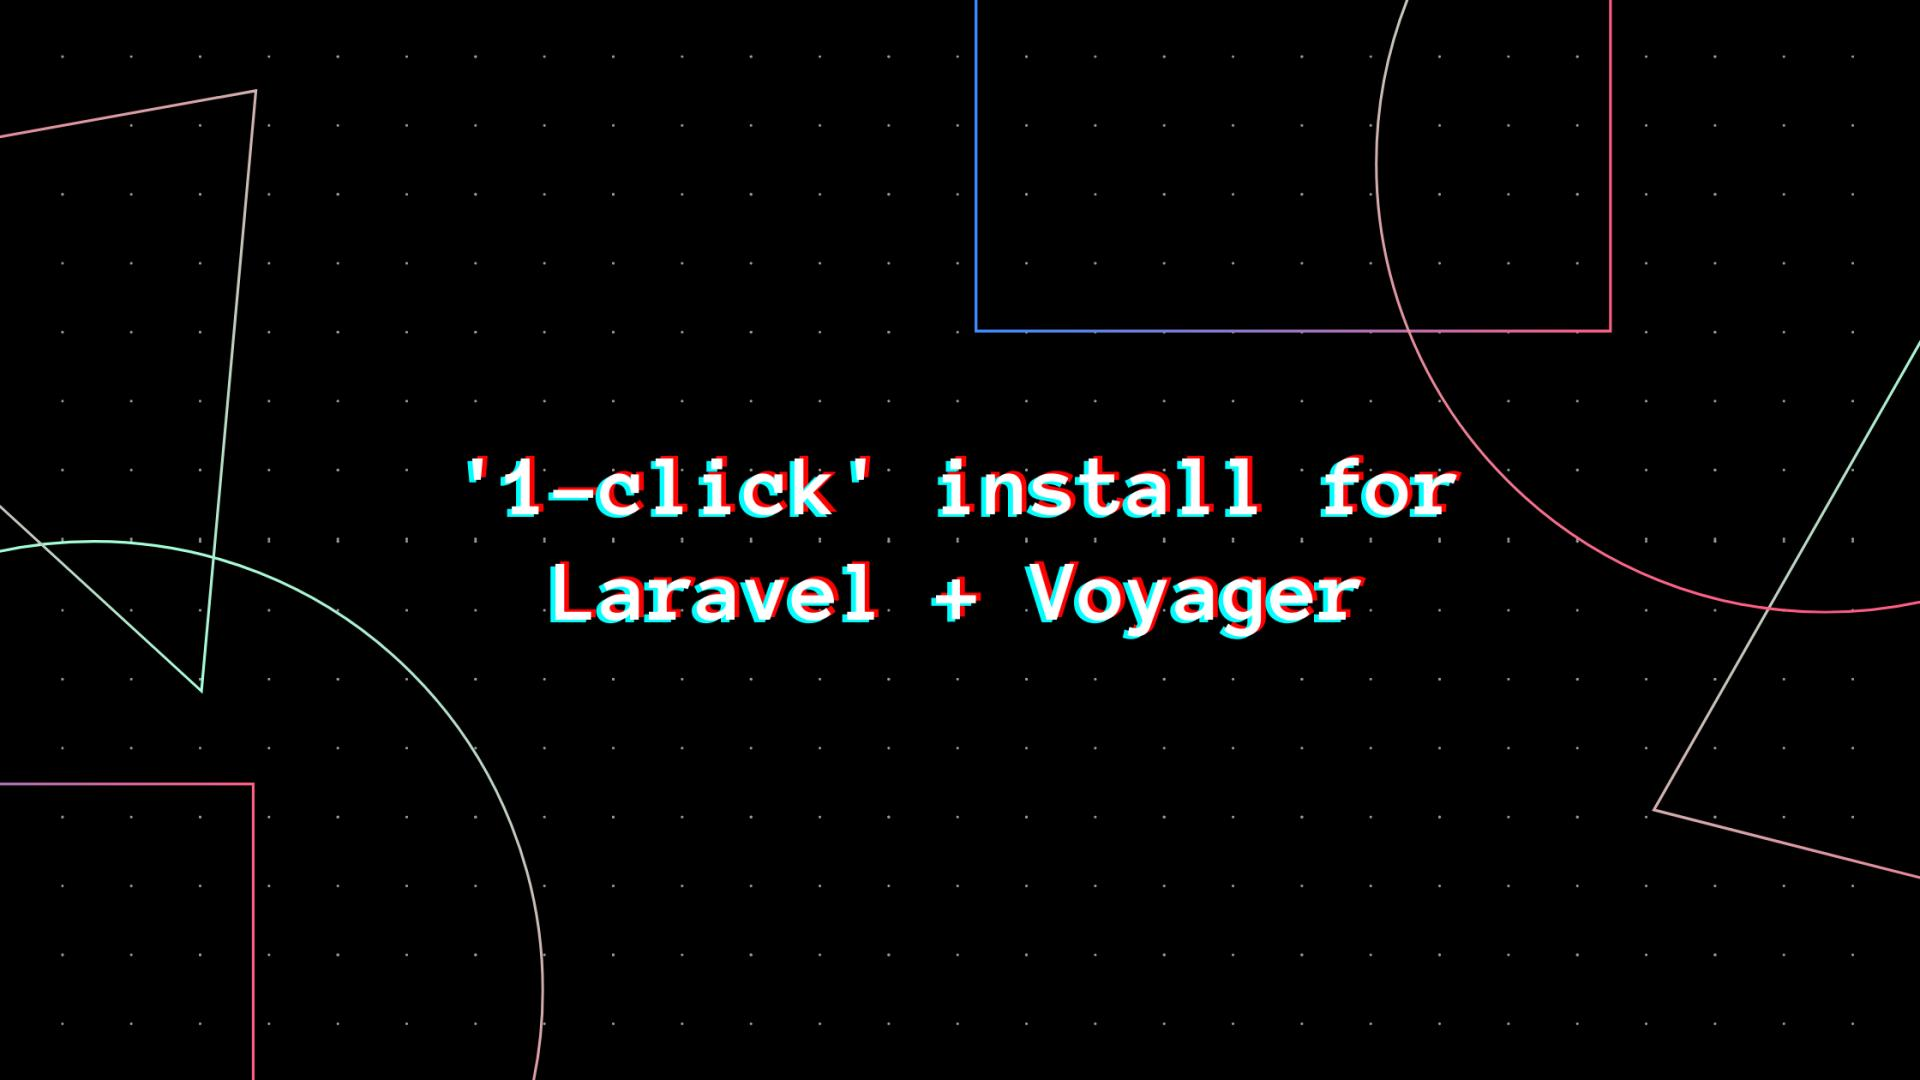 '1-click' install for Laravel + Voyager